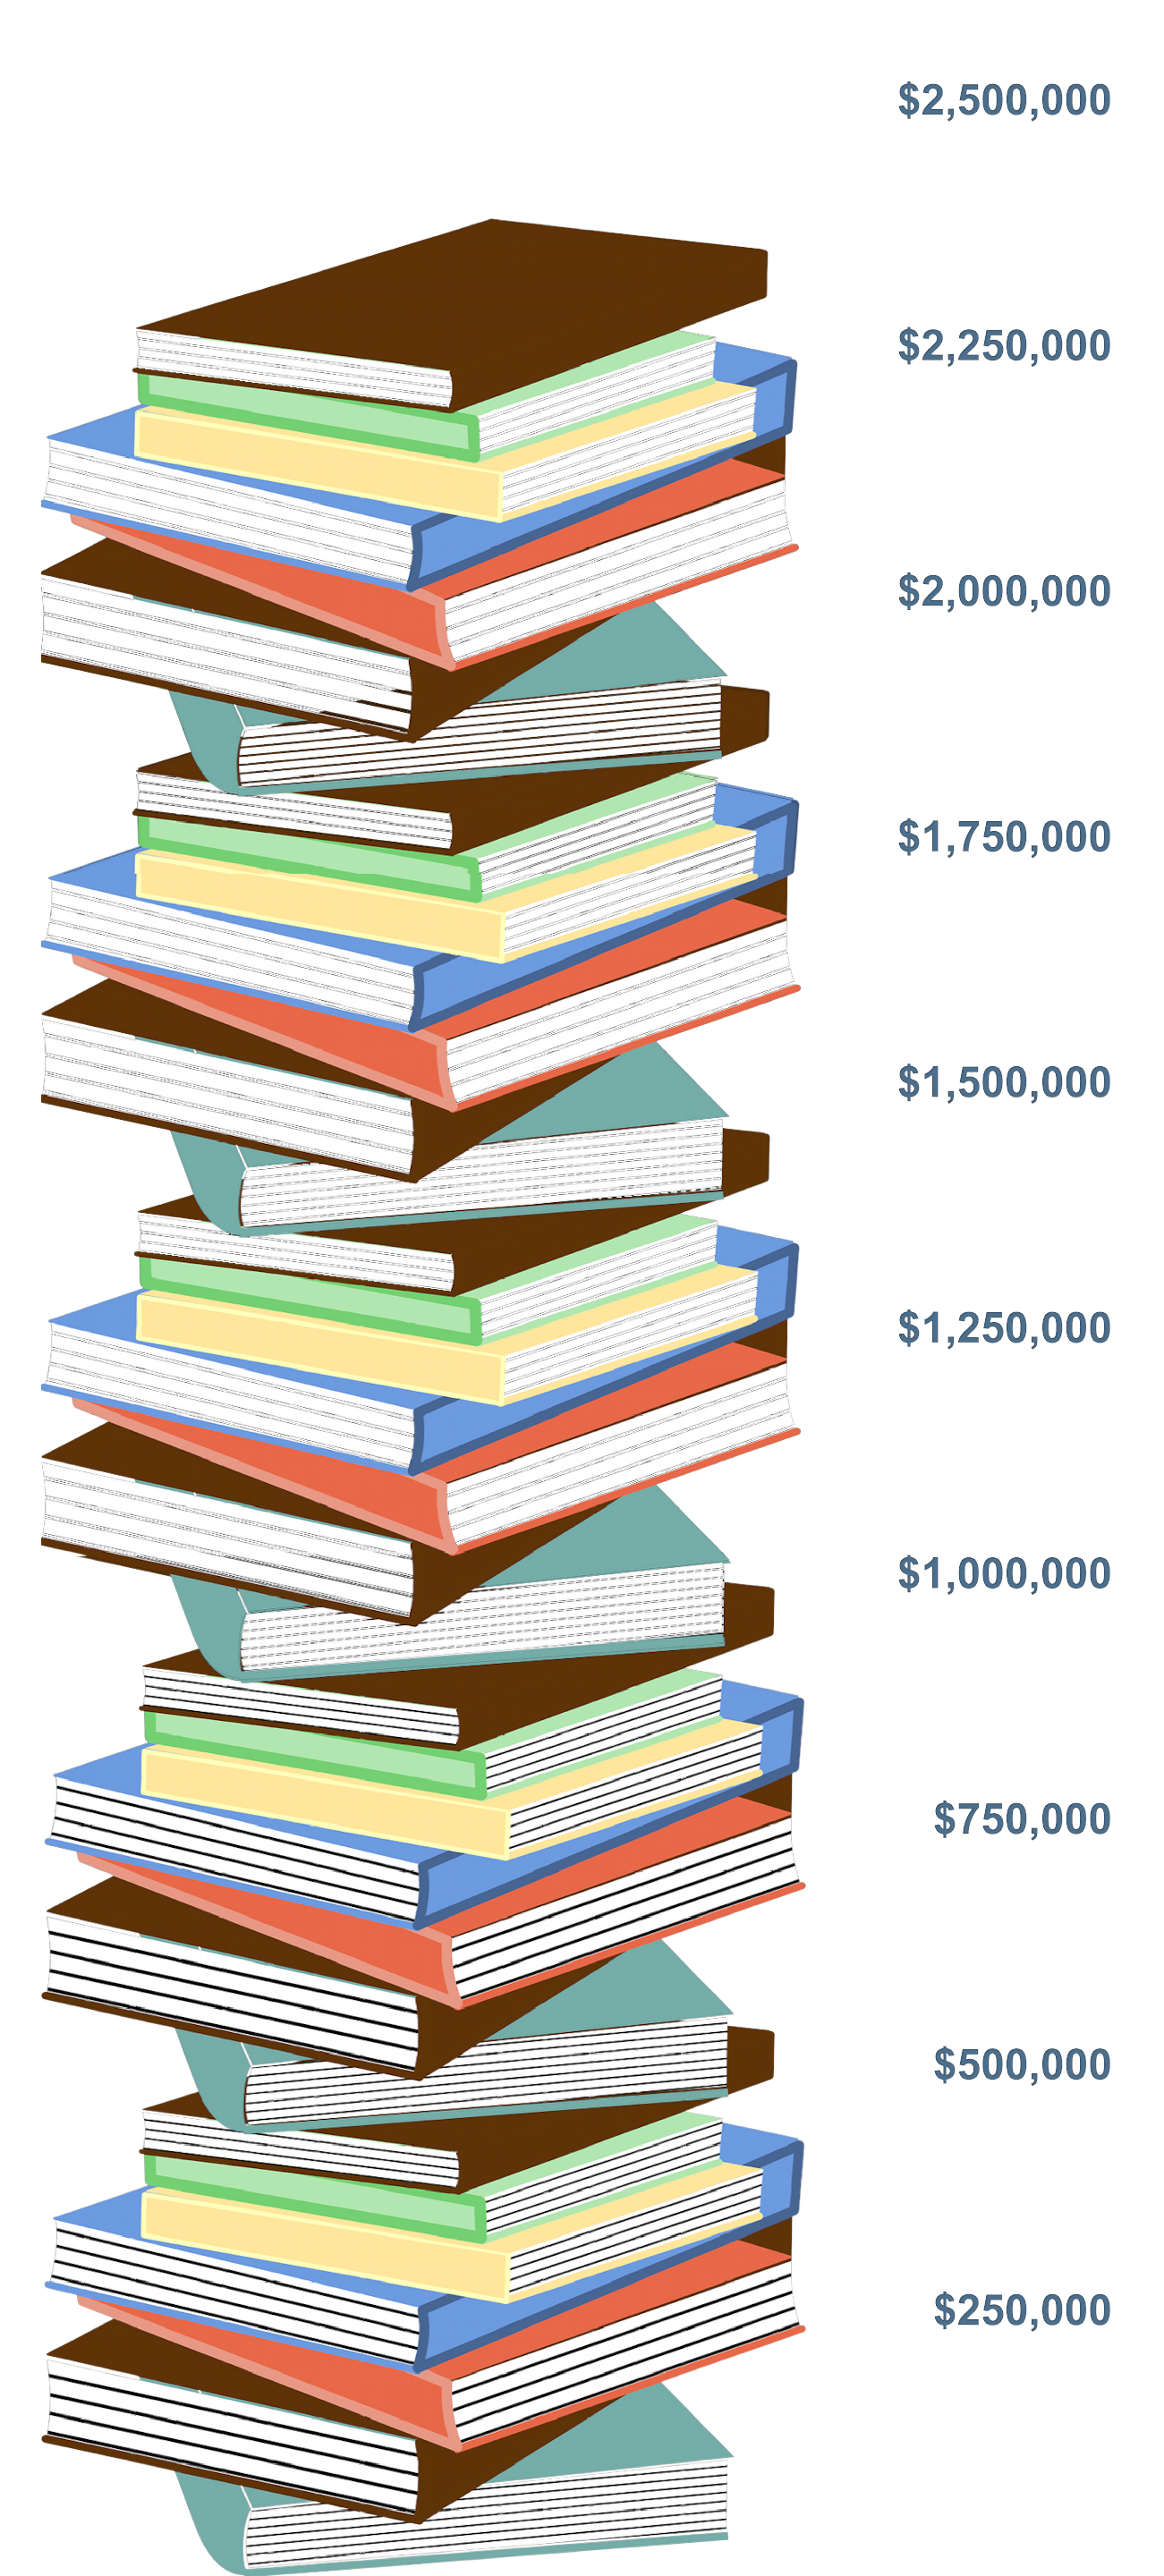 Book stack image showing $2,360,000 raised so far